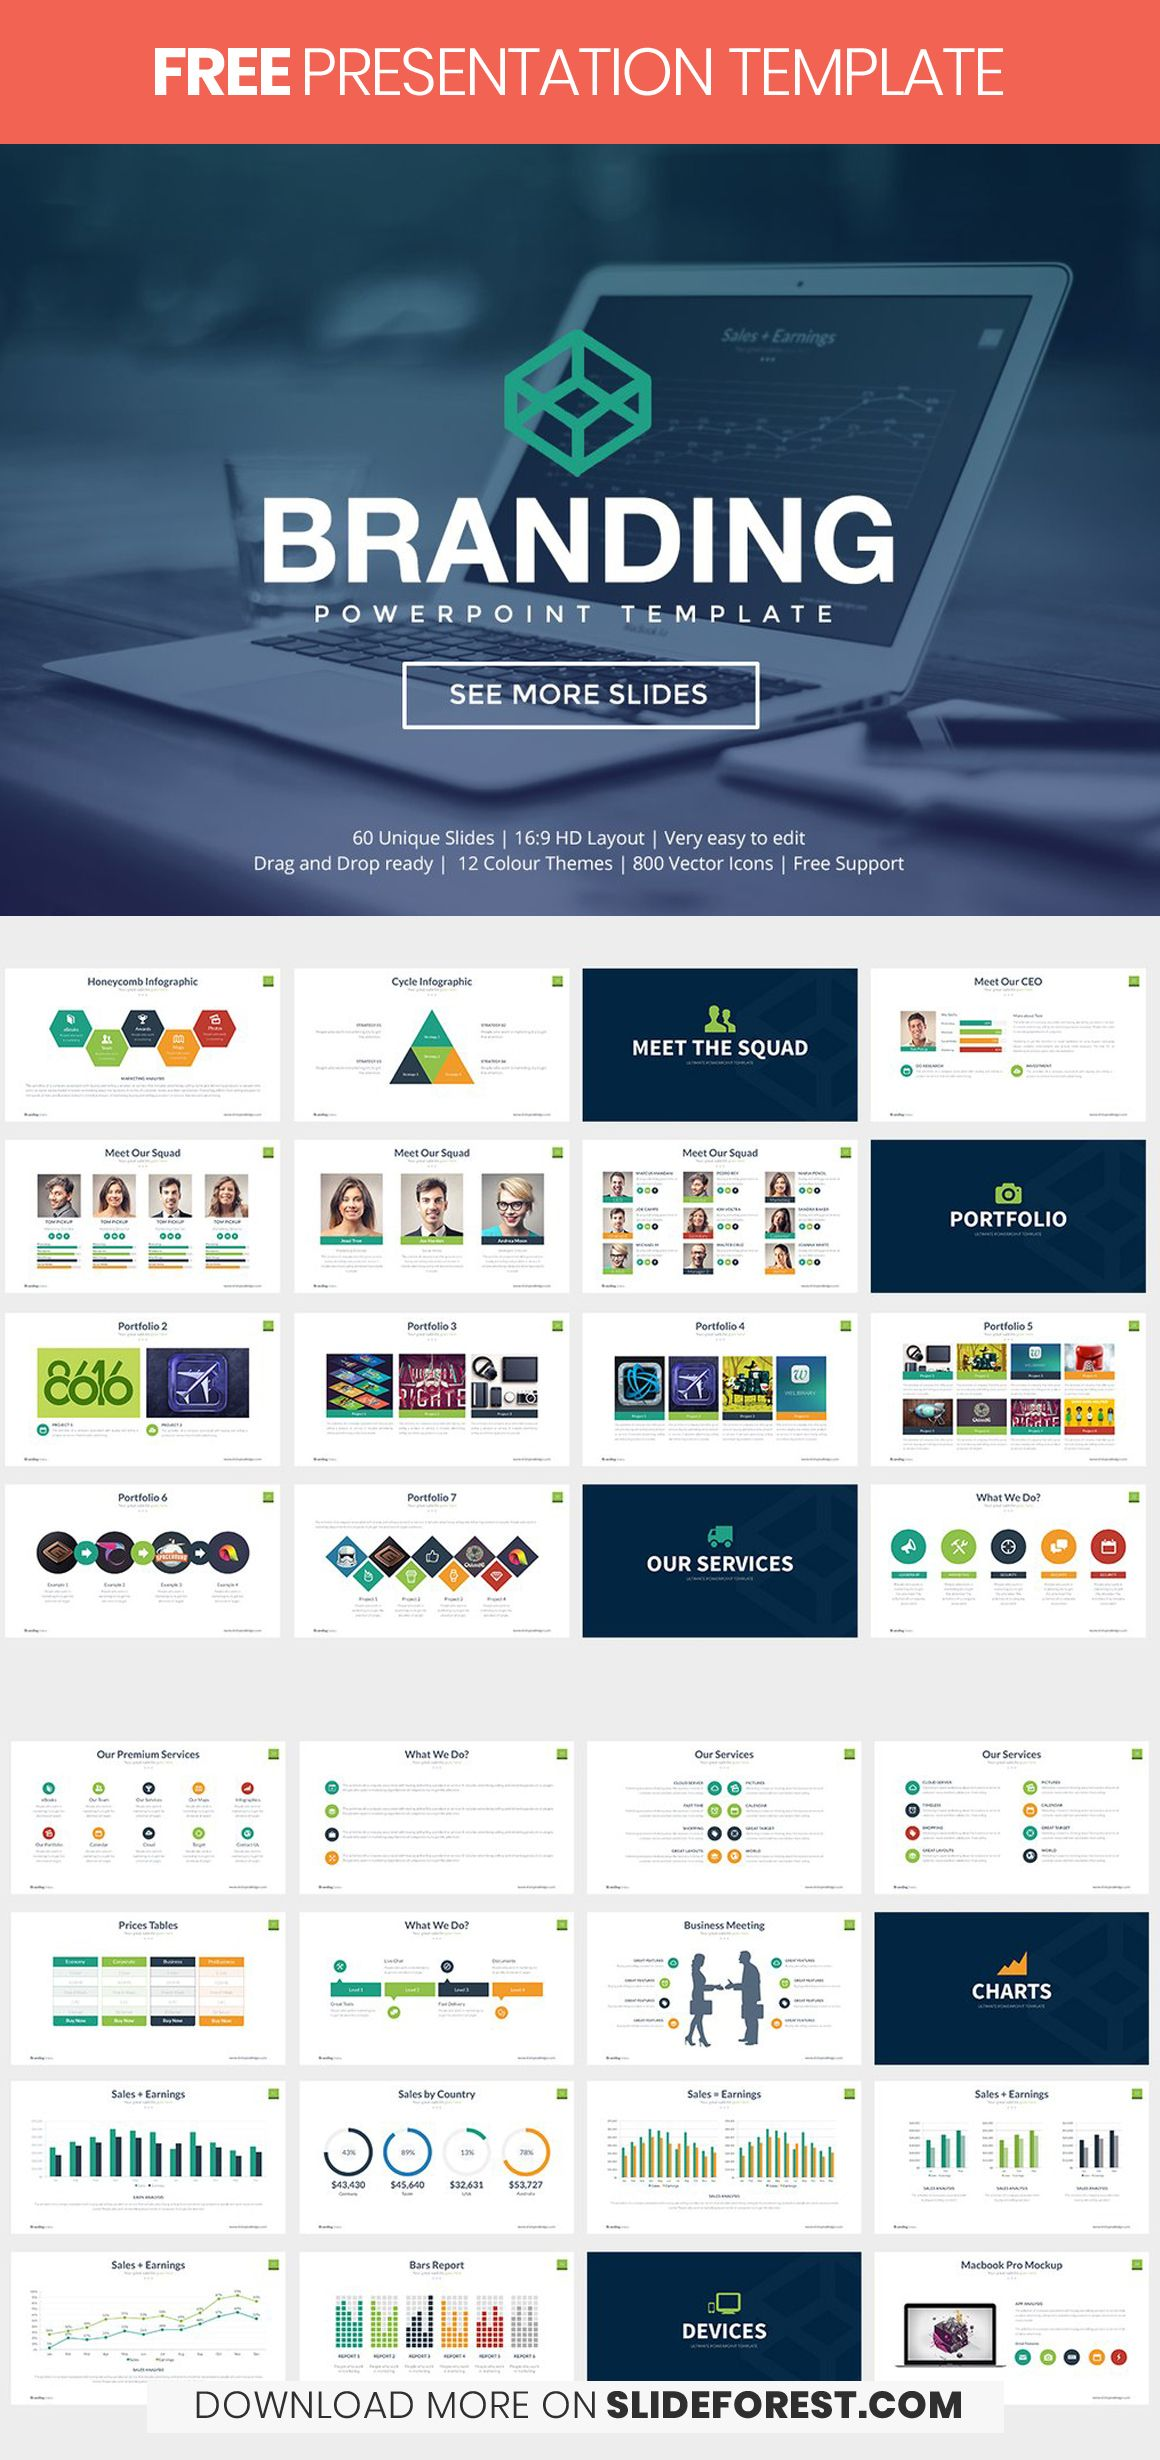 Branding Free Powerpoint Template Demo Free Powerpoint Templates